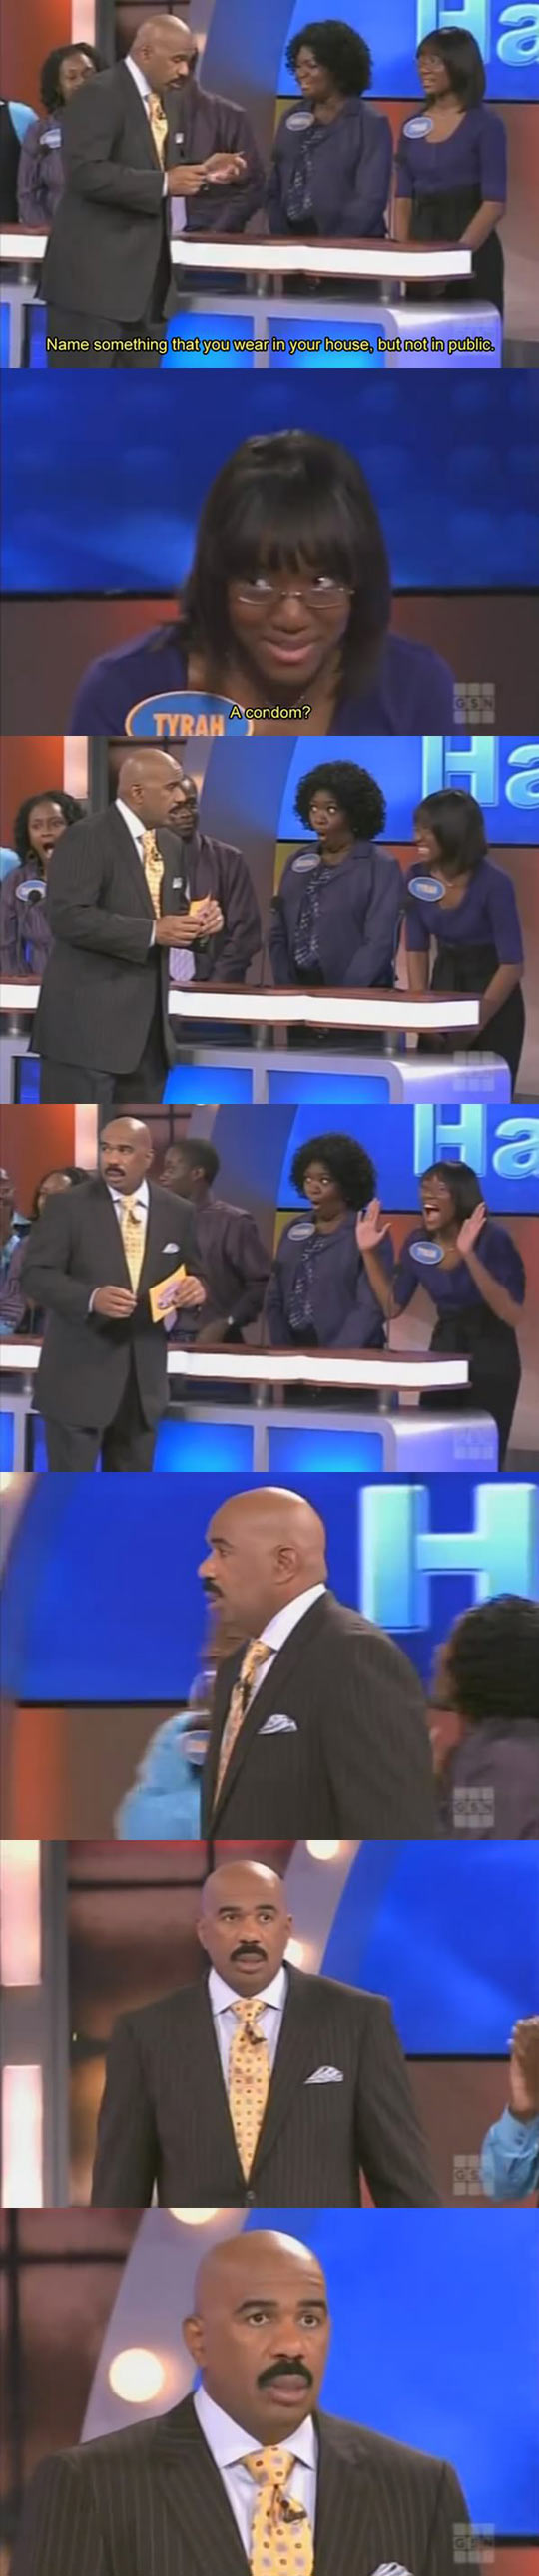 funny-picture-show-Family-Feud-Steve-Harvey-wear-public